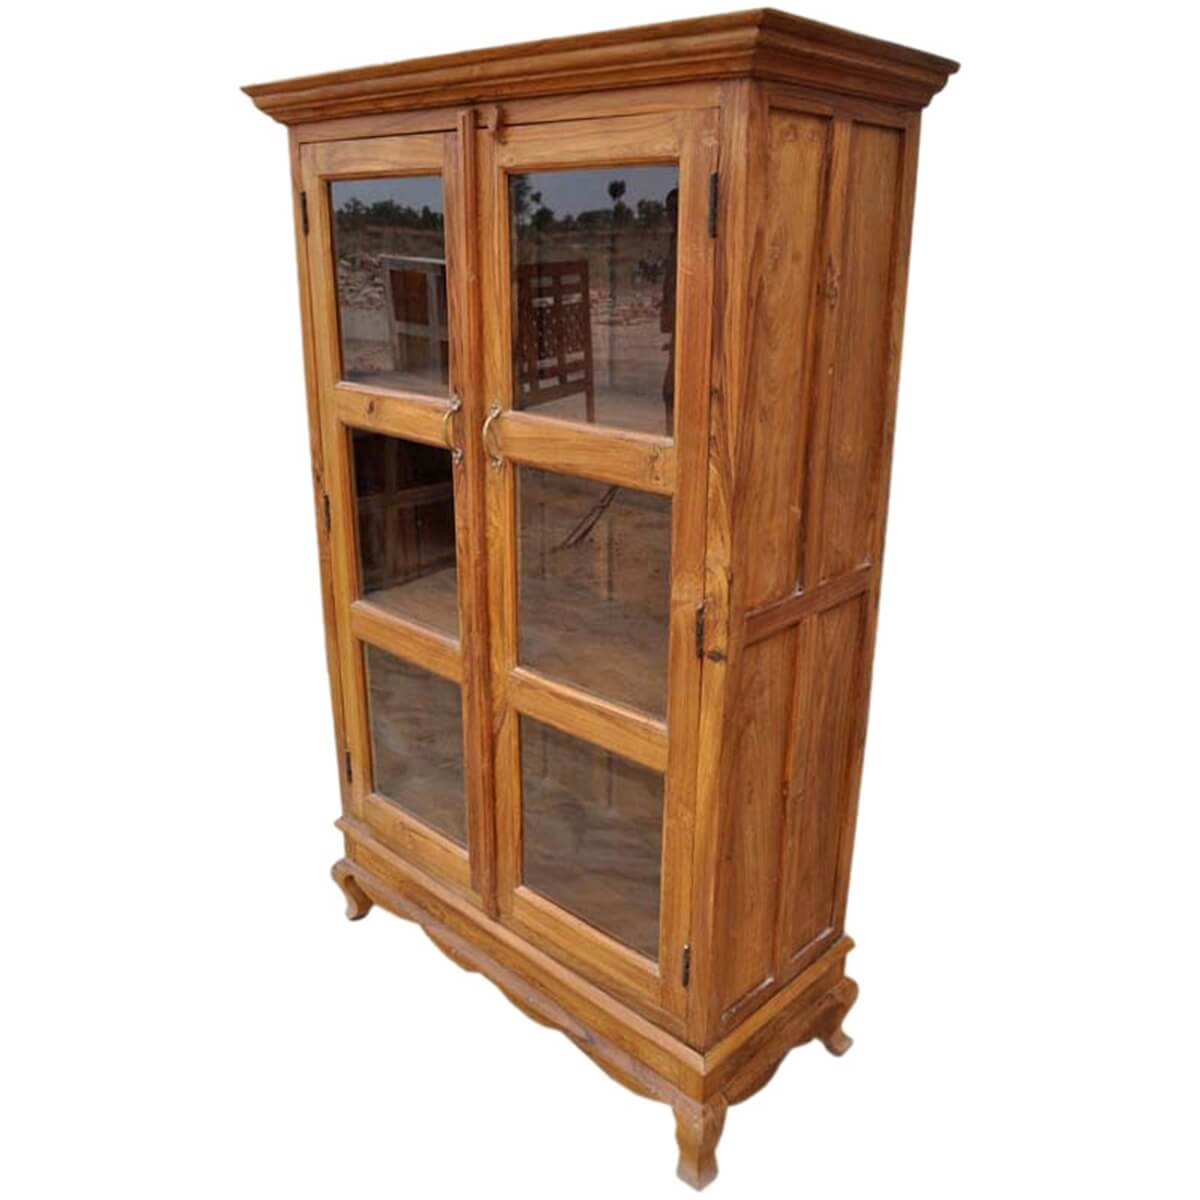 Lincoln Study Solid Wood Glass Door Cabinet Bookcase Armoire